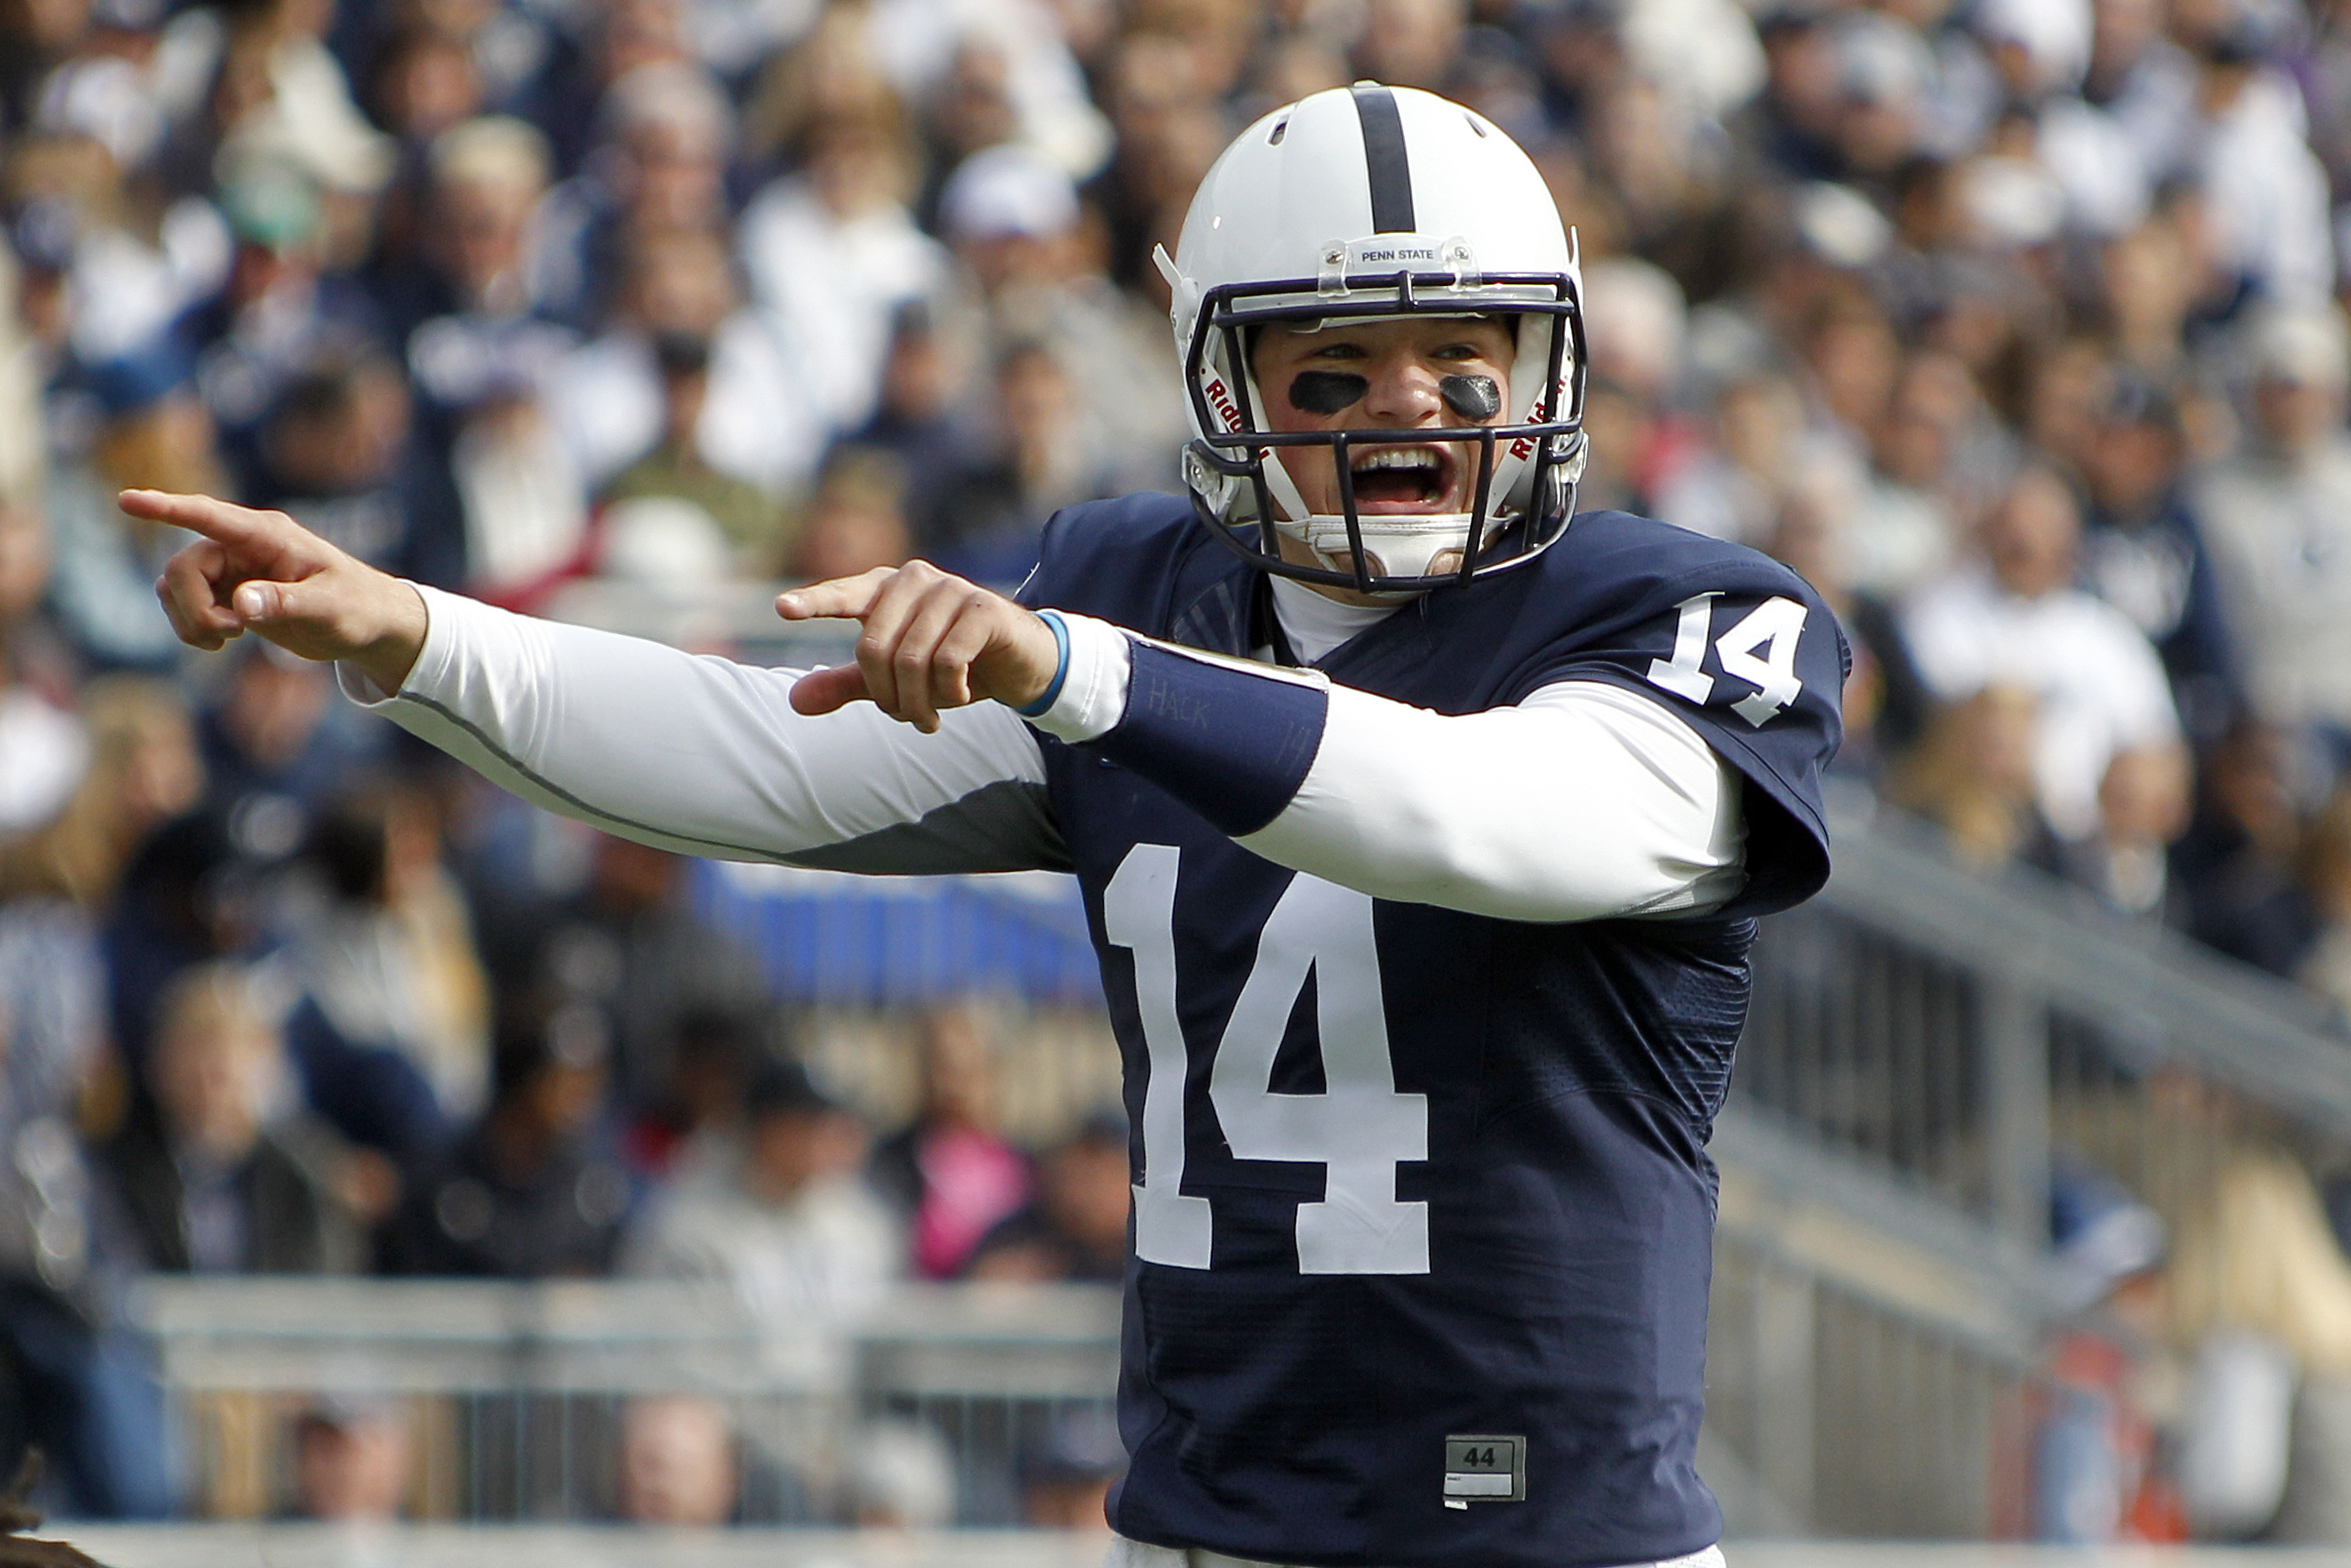 Project QB Christian Hackenberg Won't Stop Jets' Ongoing ...